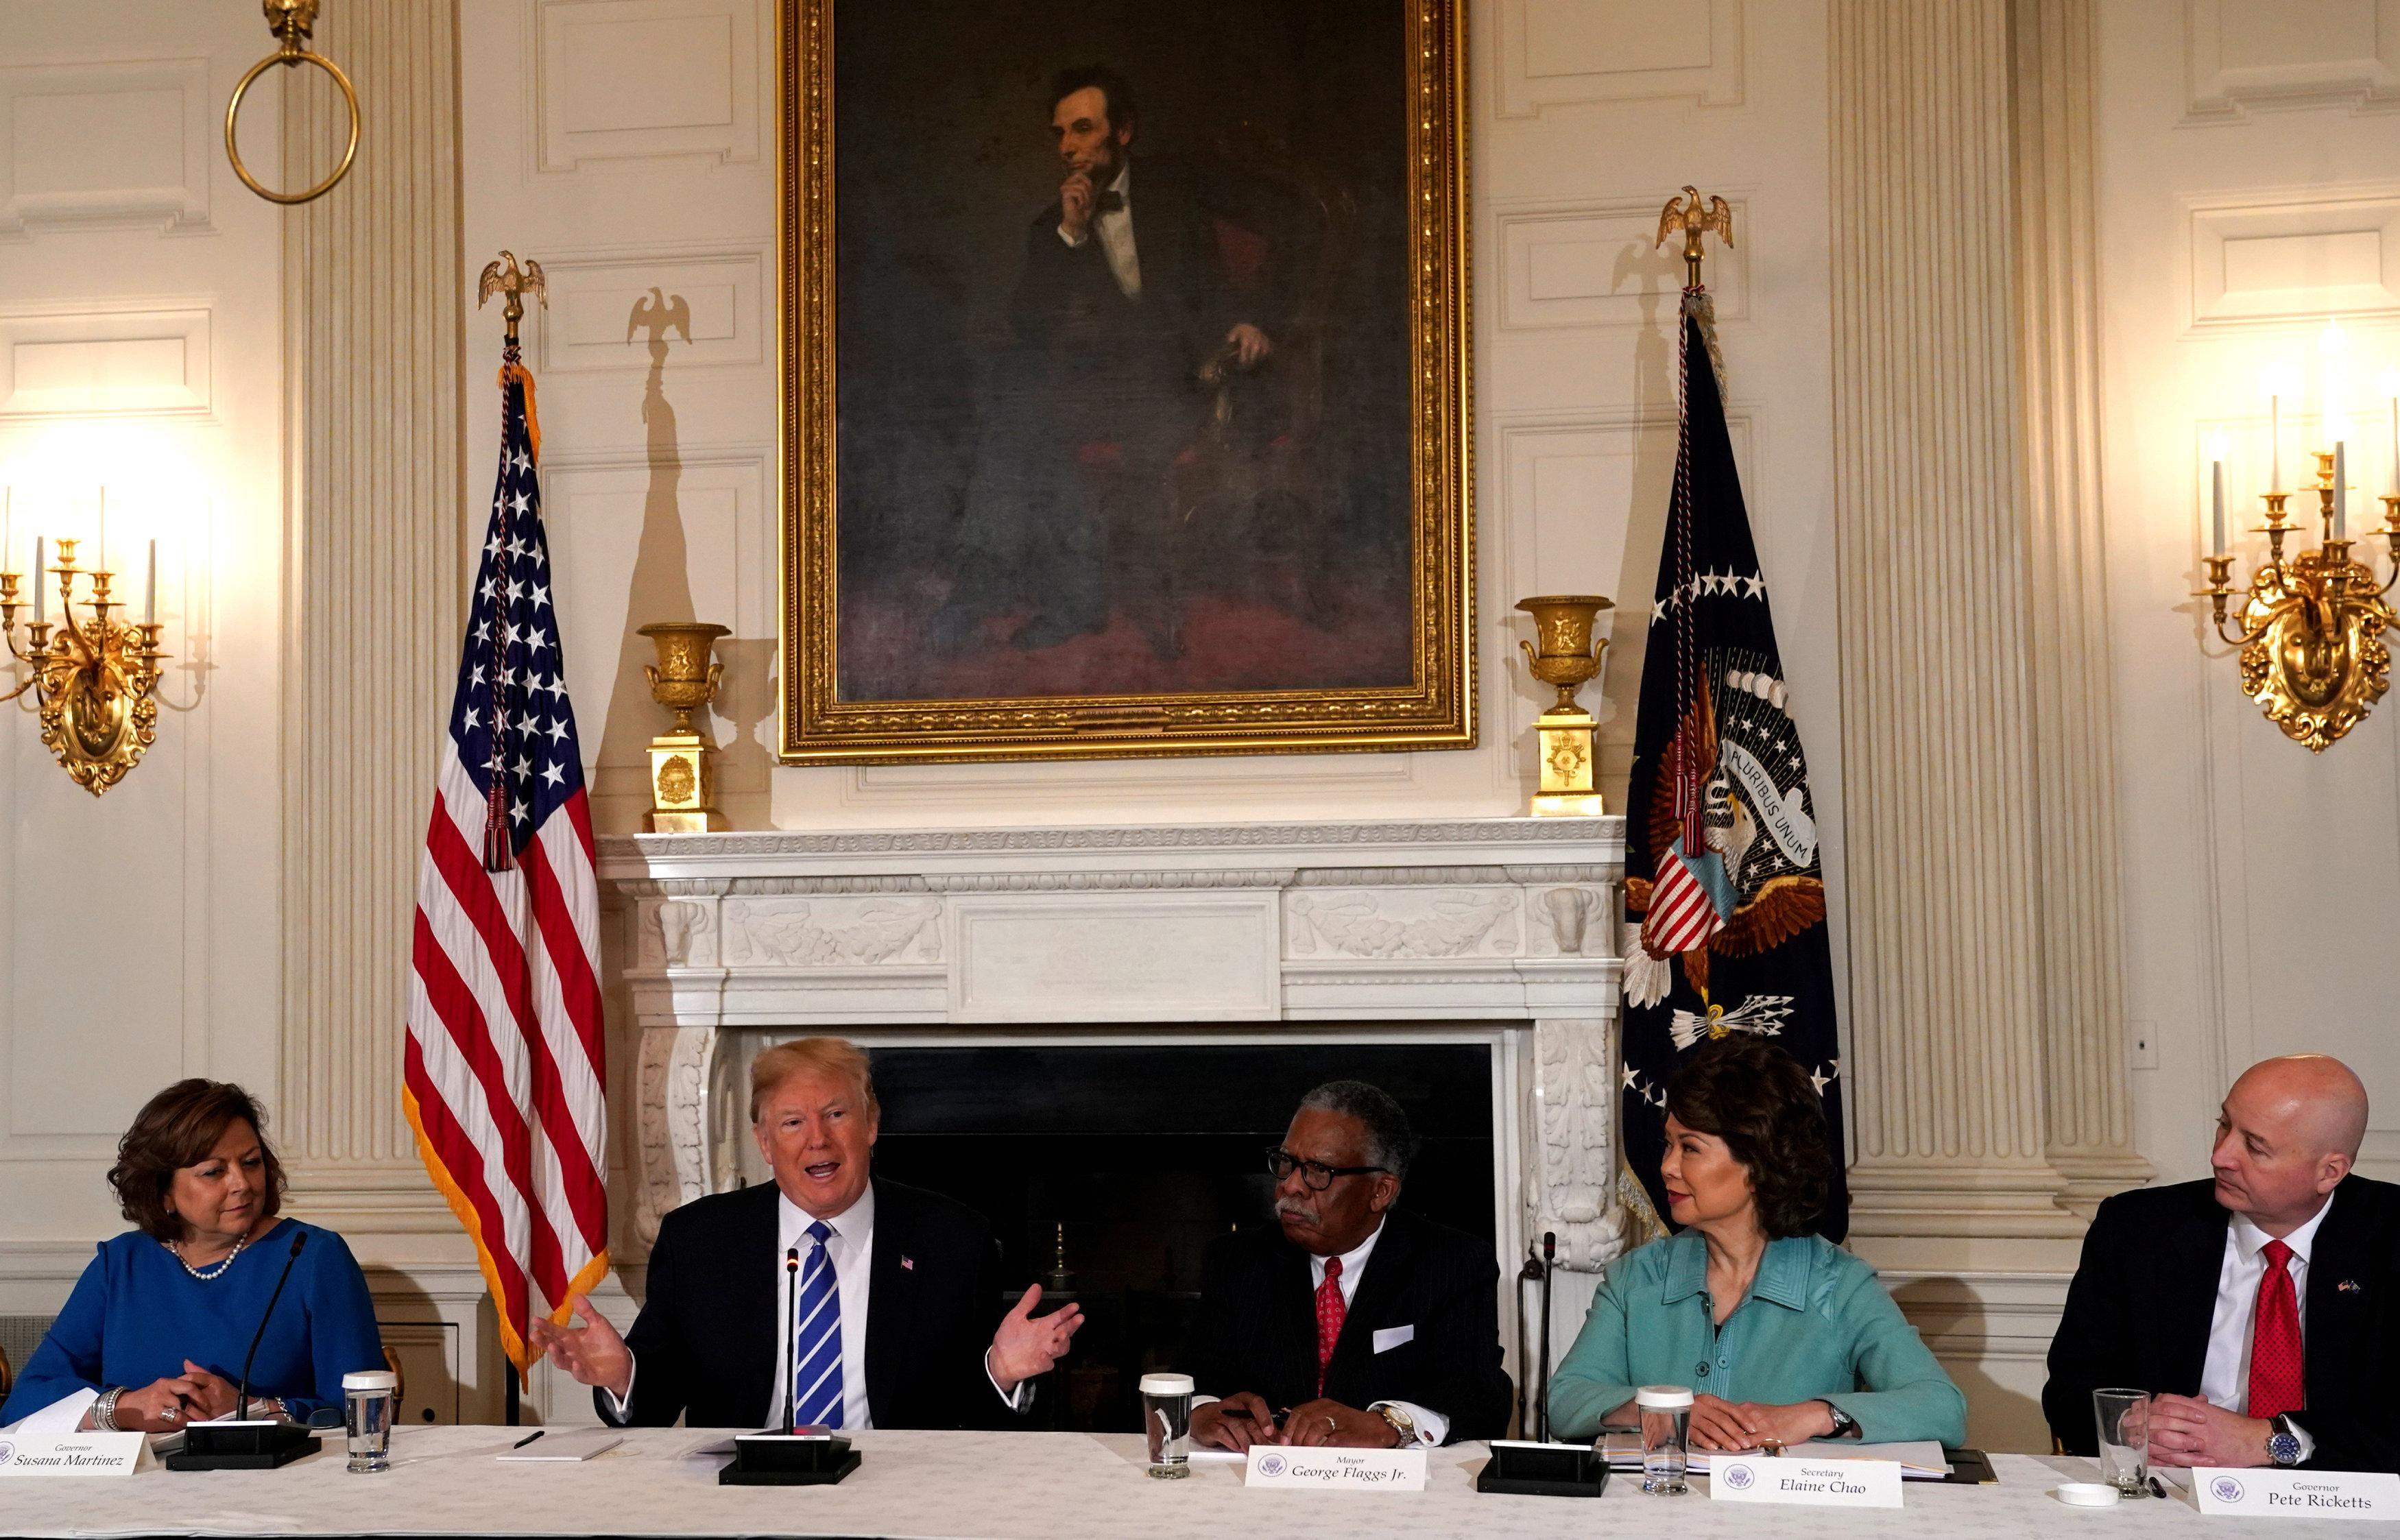 U.S. President Donald Trump holds a meeting on his infrastructure initiative at the White House in Washington, U.S., February 12, 2018. Kevin Lamarque